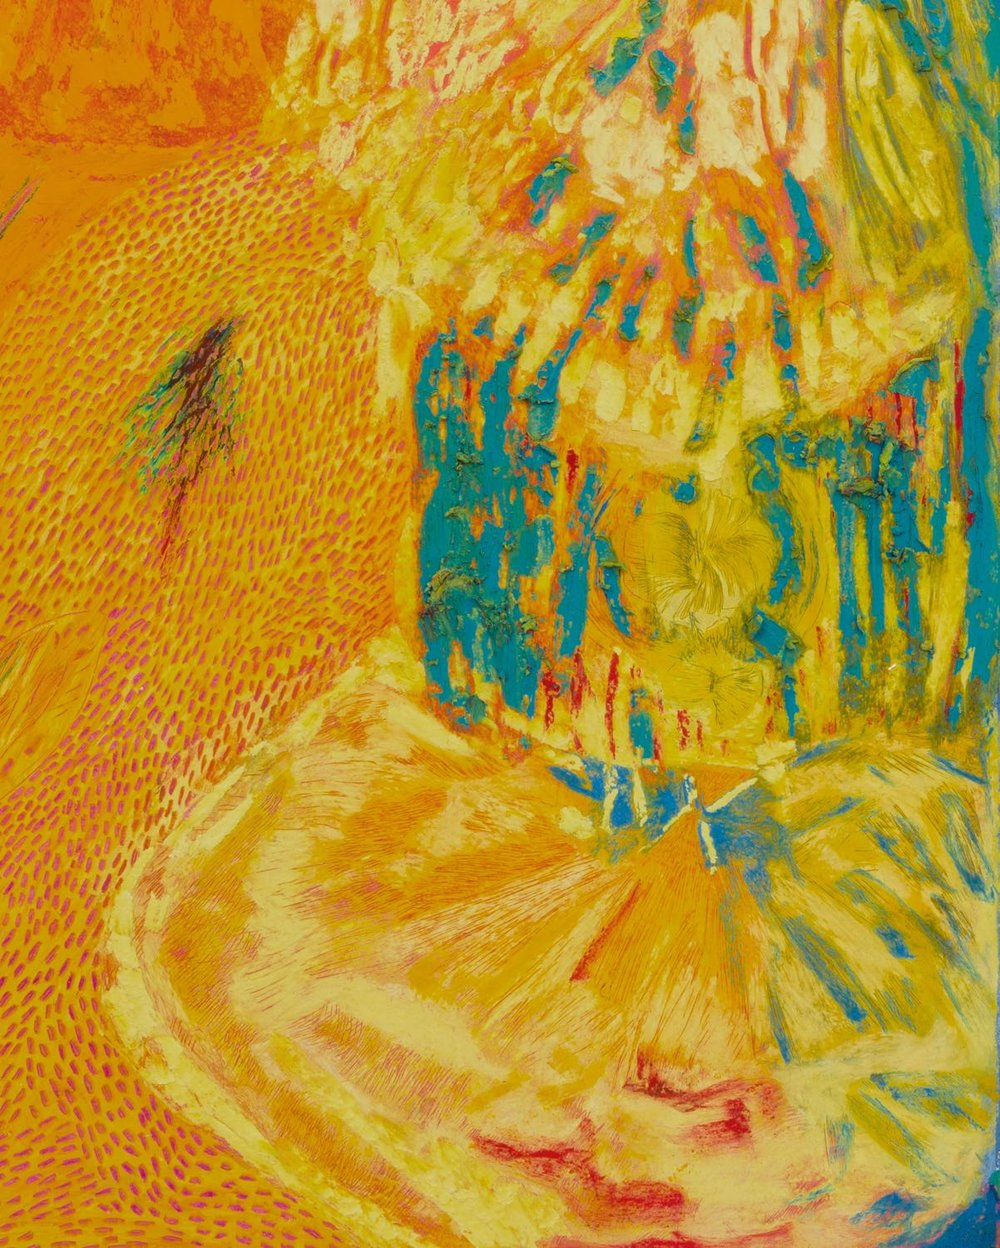 Mimi Lauter  Untitled  (Detail) 2018 Oil pastel and soft pastel on paper 30h x 22 ½w in MLaut084